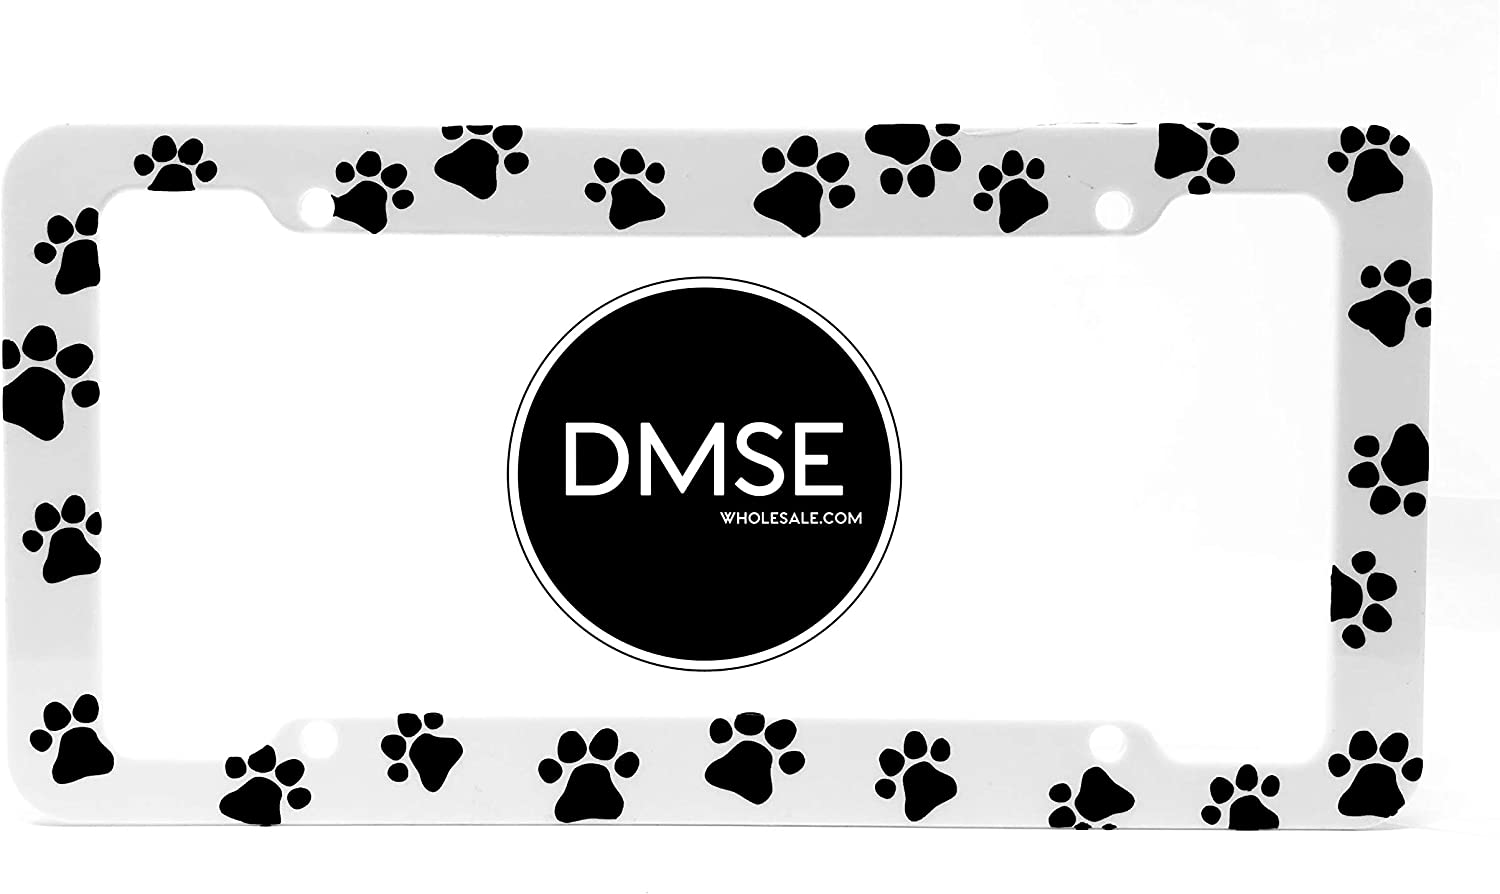 Cow DMSE Plastic License Plate Frame Cover Holder Cool Decorative Design For Any Vehicle Car or Truck